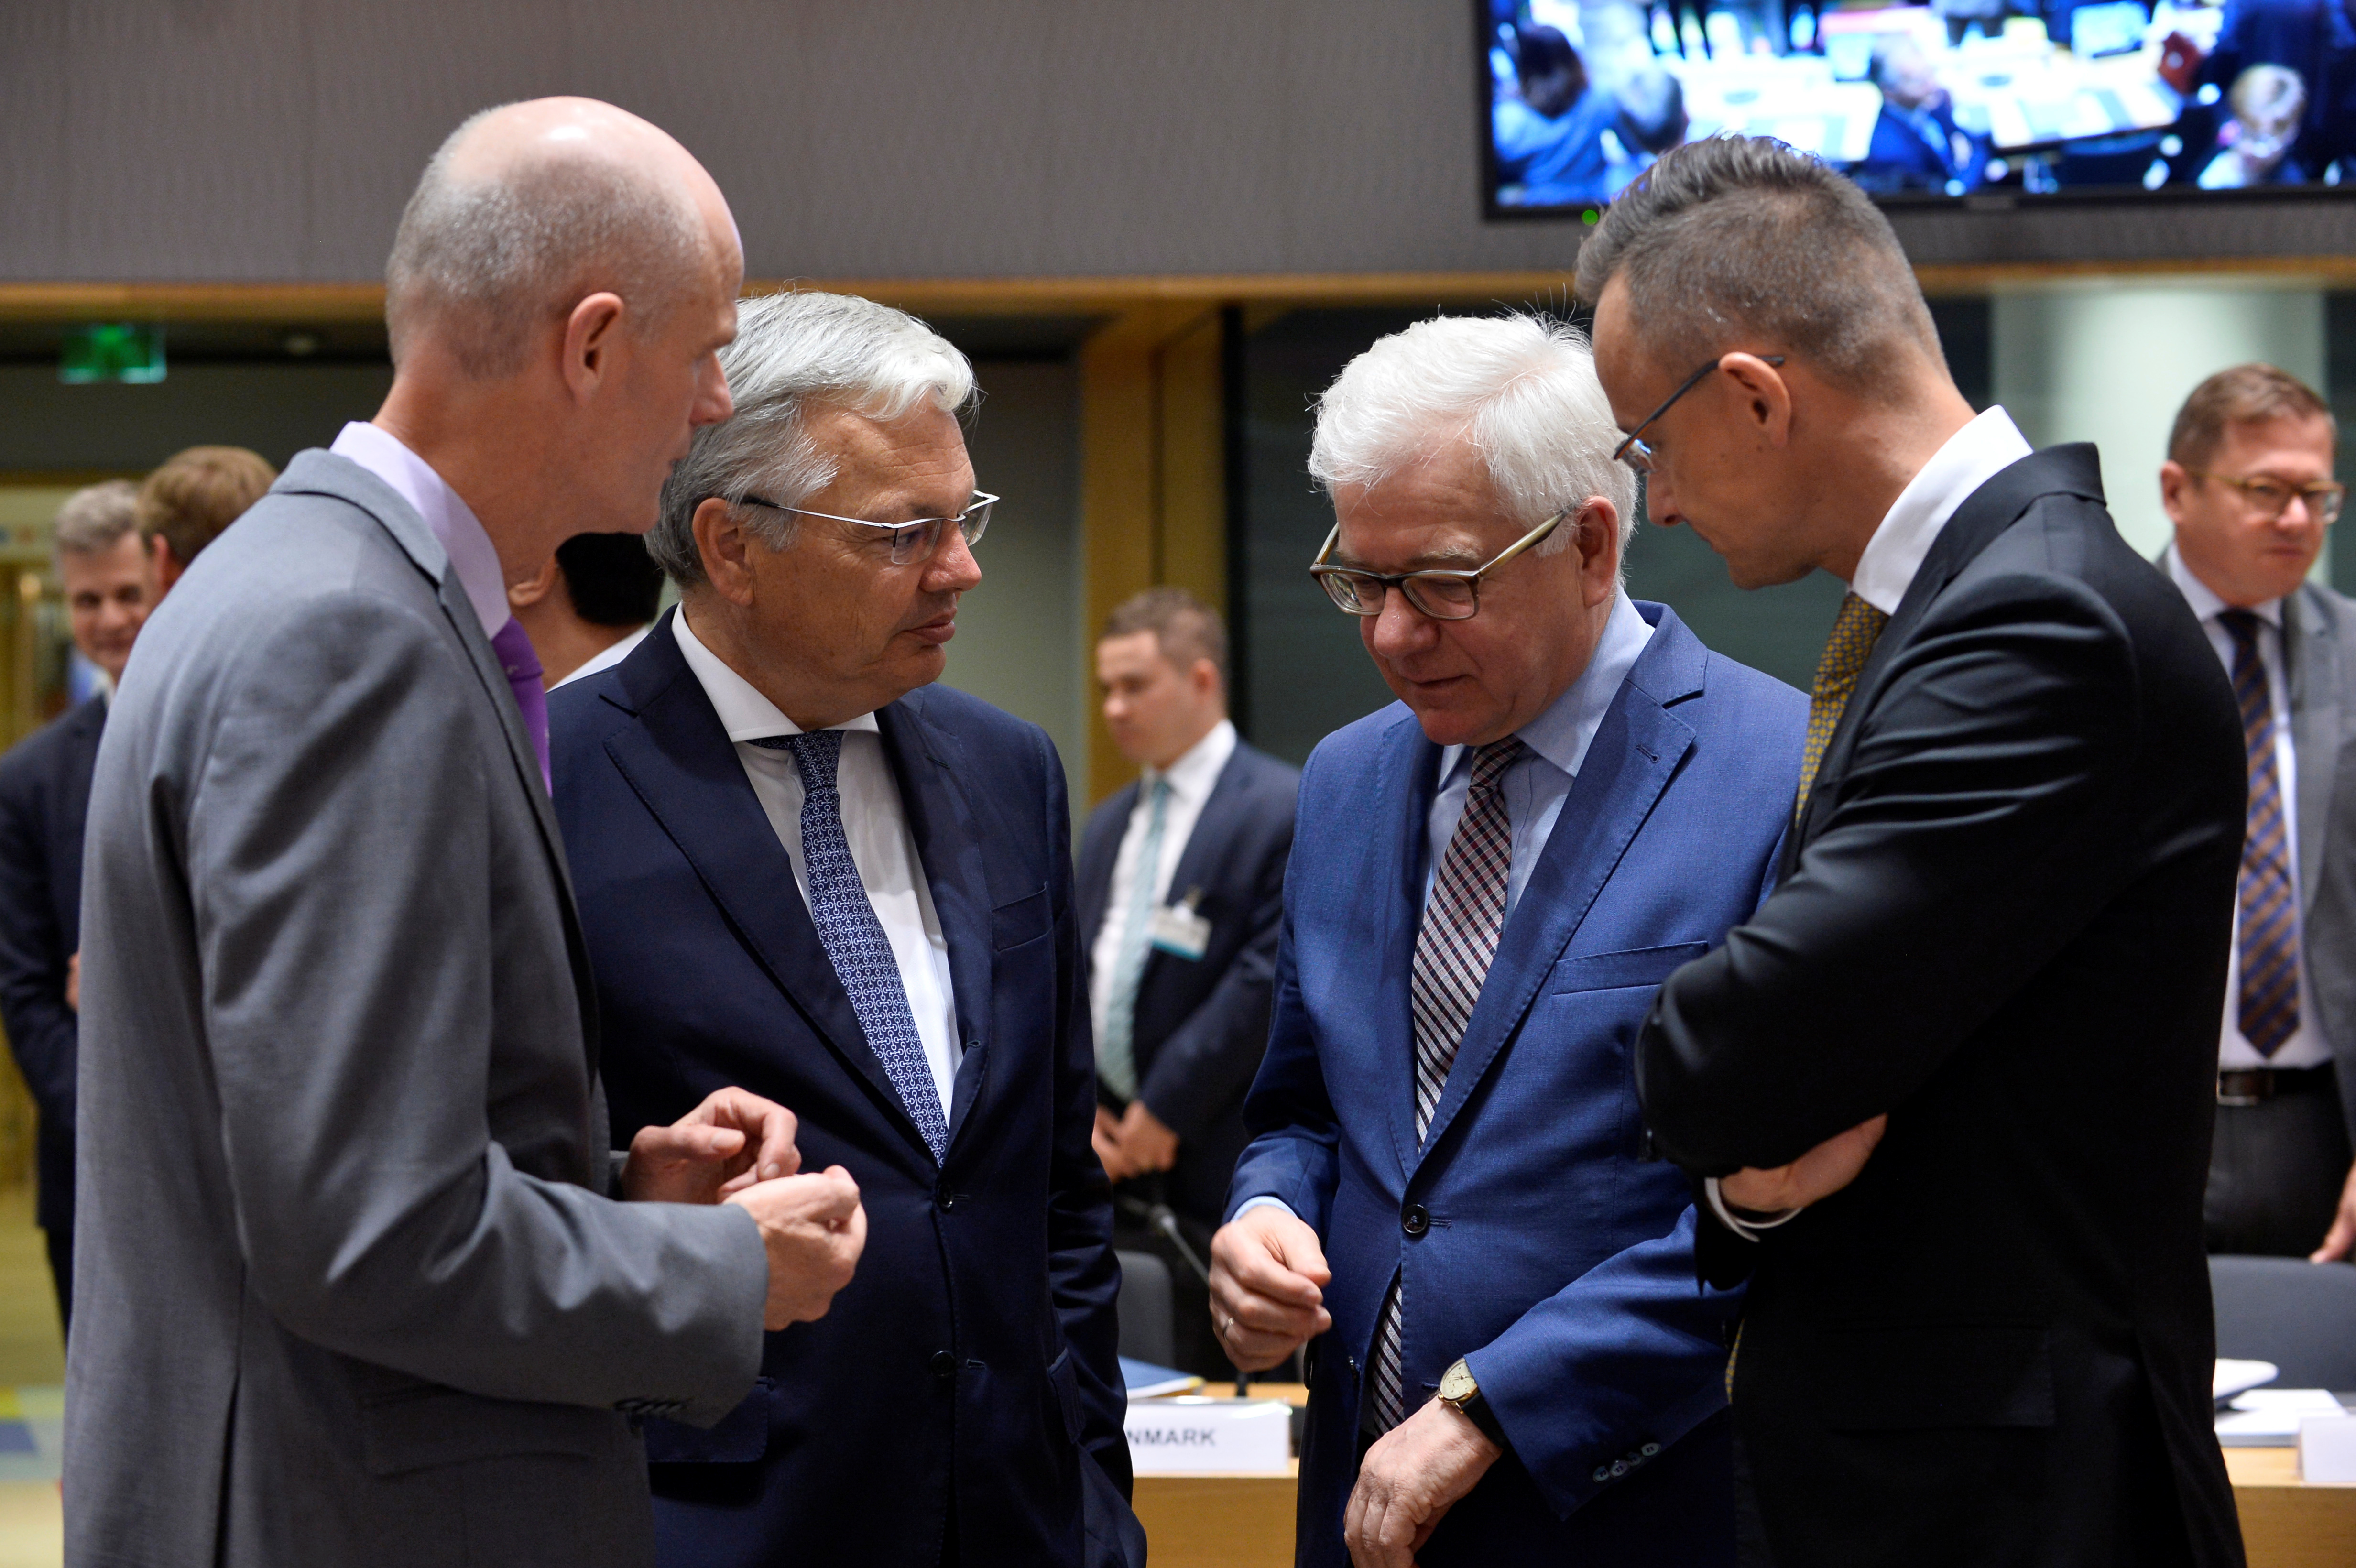 Foreign Ministers of the Netherlands, Stef Blok, Belgium, Didier Reynders, Poland, Jacek Czaputowicz and Hungary, Peter Szijjarto, attend a EU foreign ministers meeting in Brussels, Belgium July 15, 2019. REUTERS/Johanna Geron - RC1AAC9A8A90